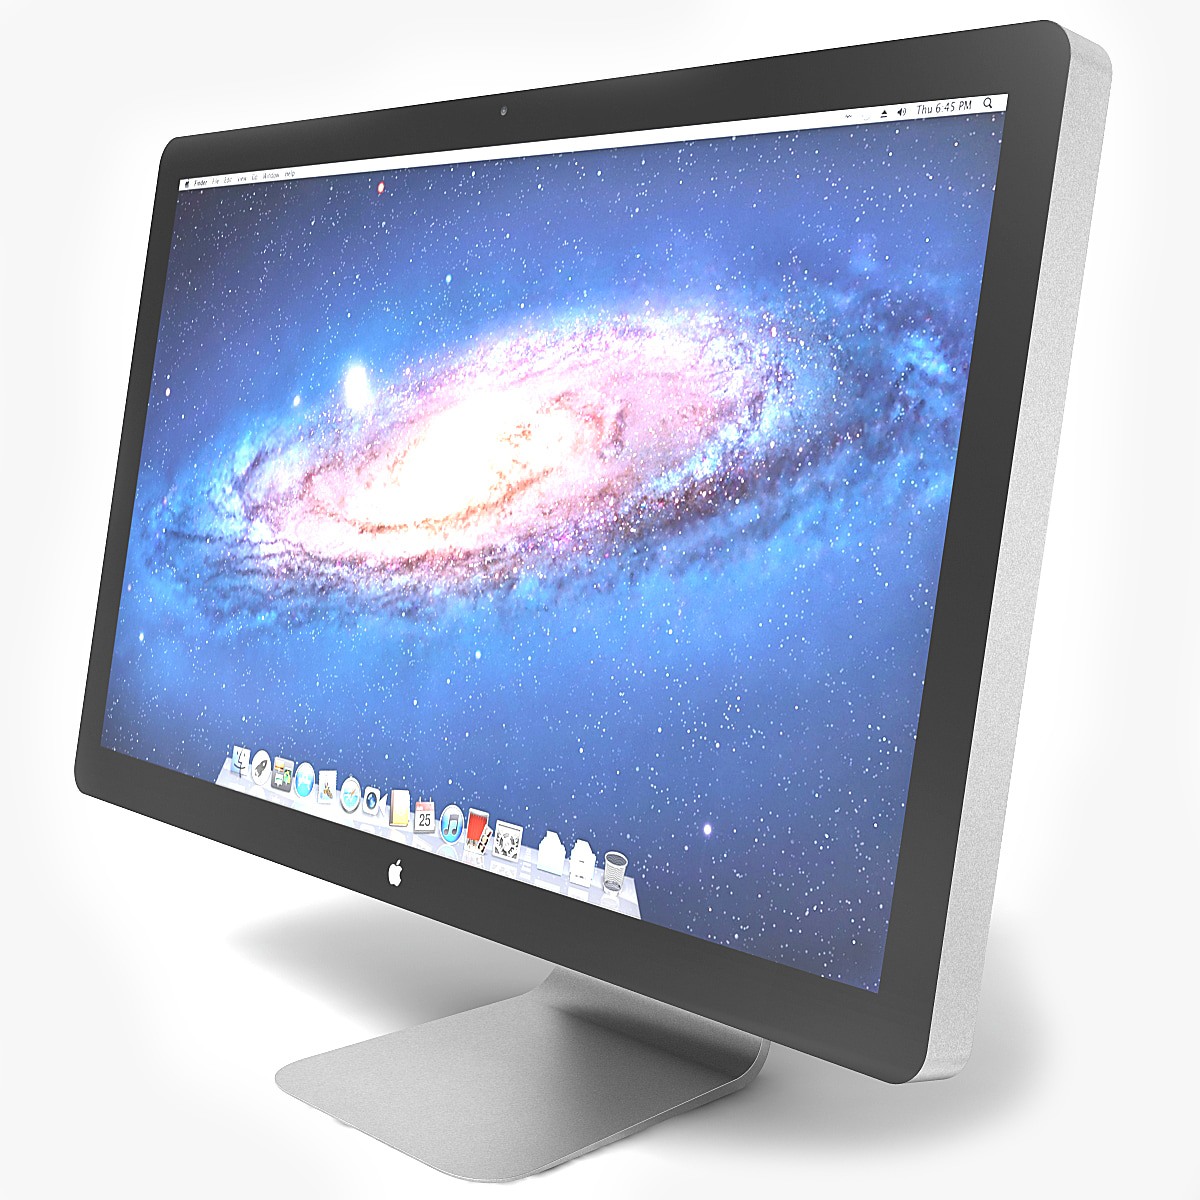 Apple_Thunderbolt_Display_00.jpg